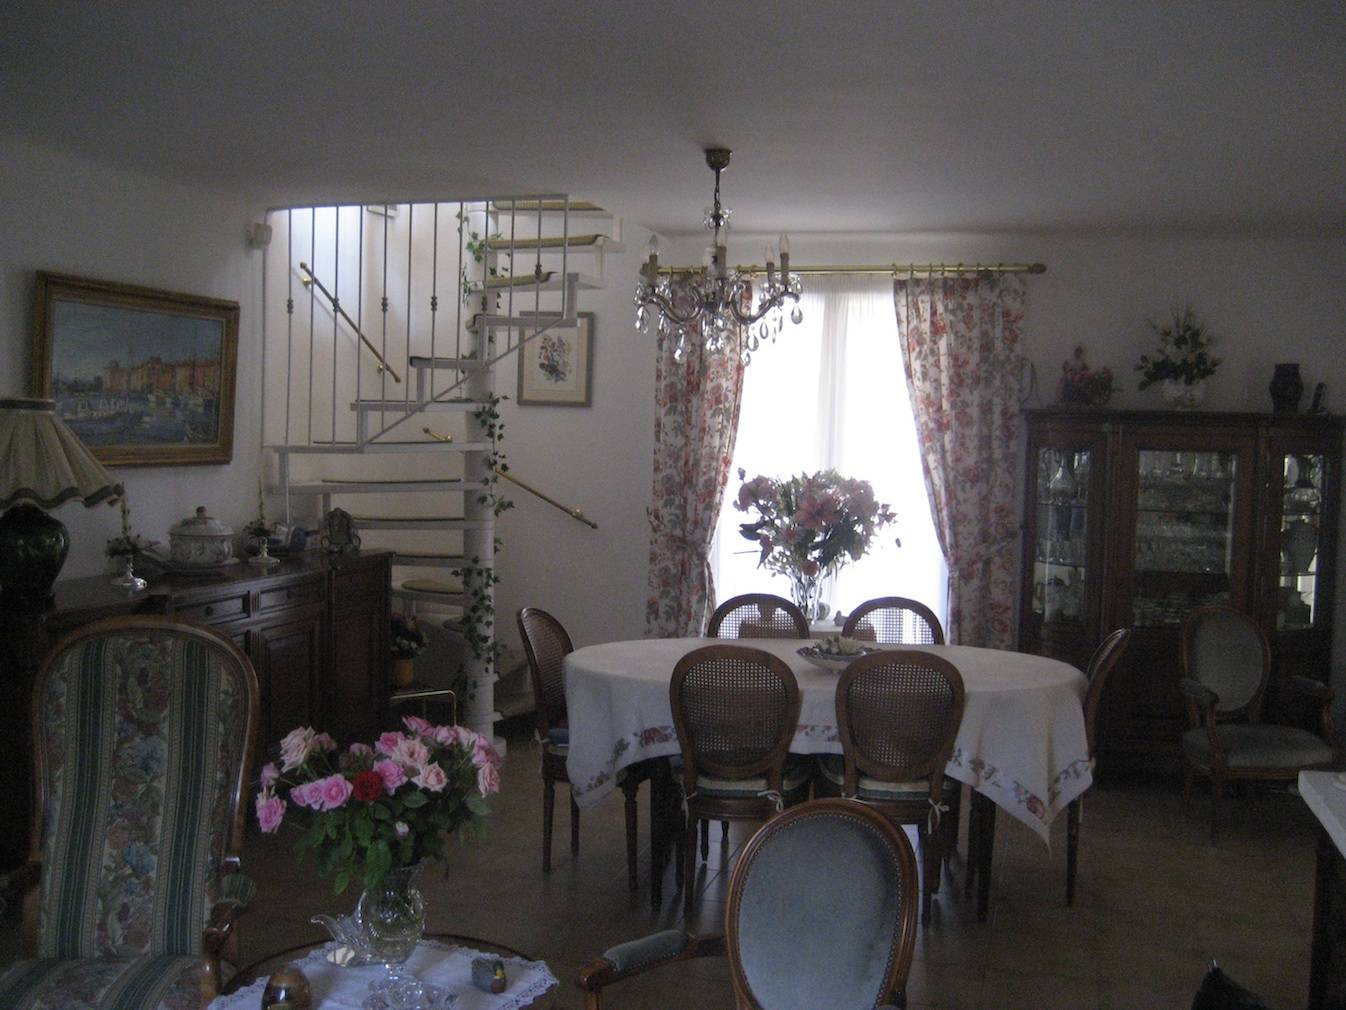 Cabasse, a pleasant house offering many opportunities